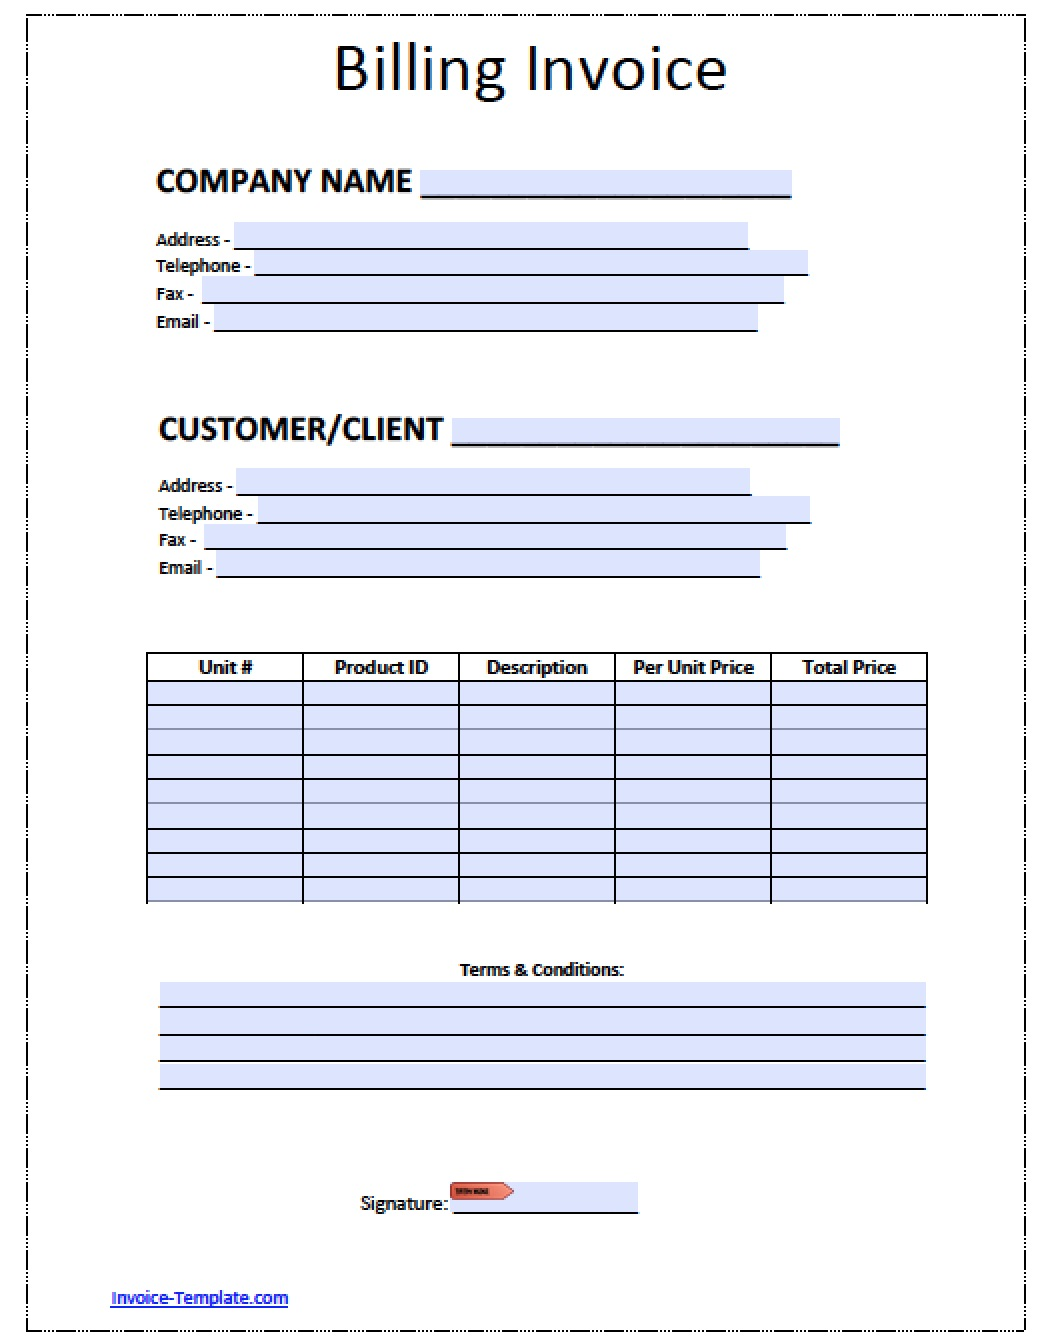 Billing Invoice Template Word Pdf  Ms Word Fax Template